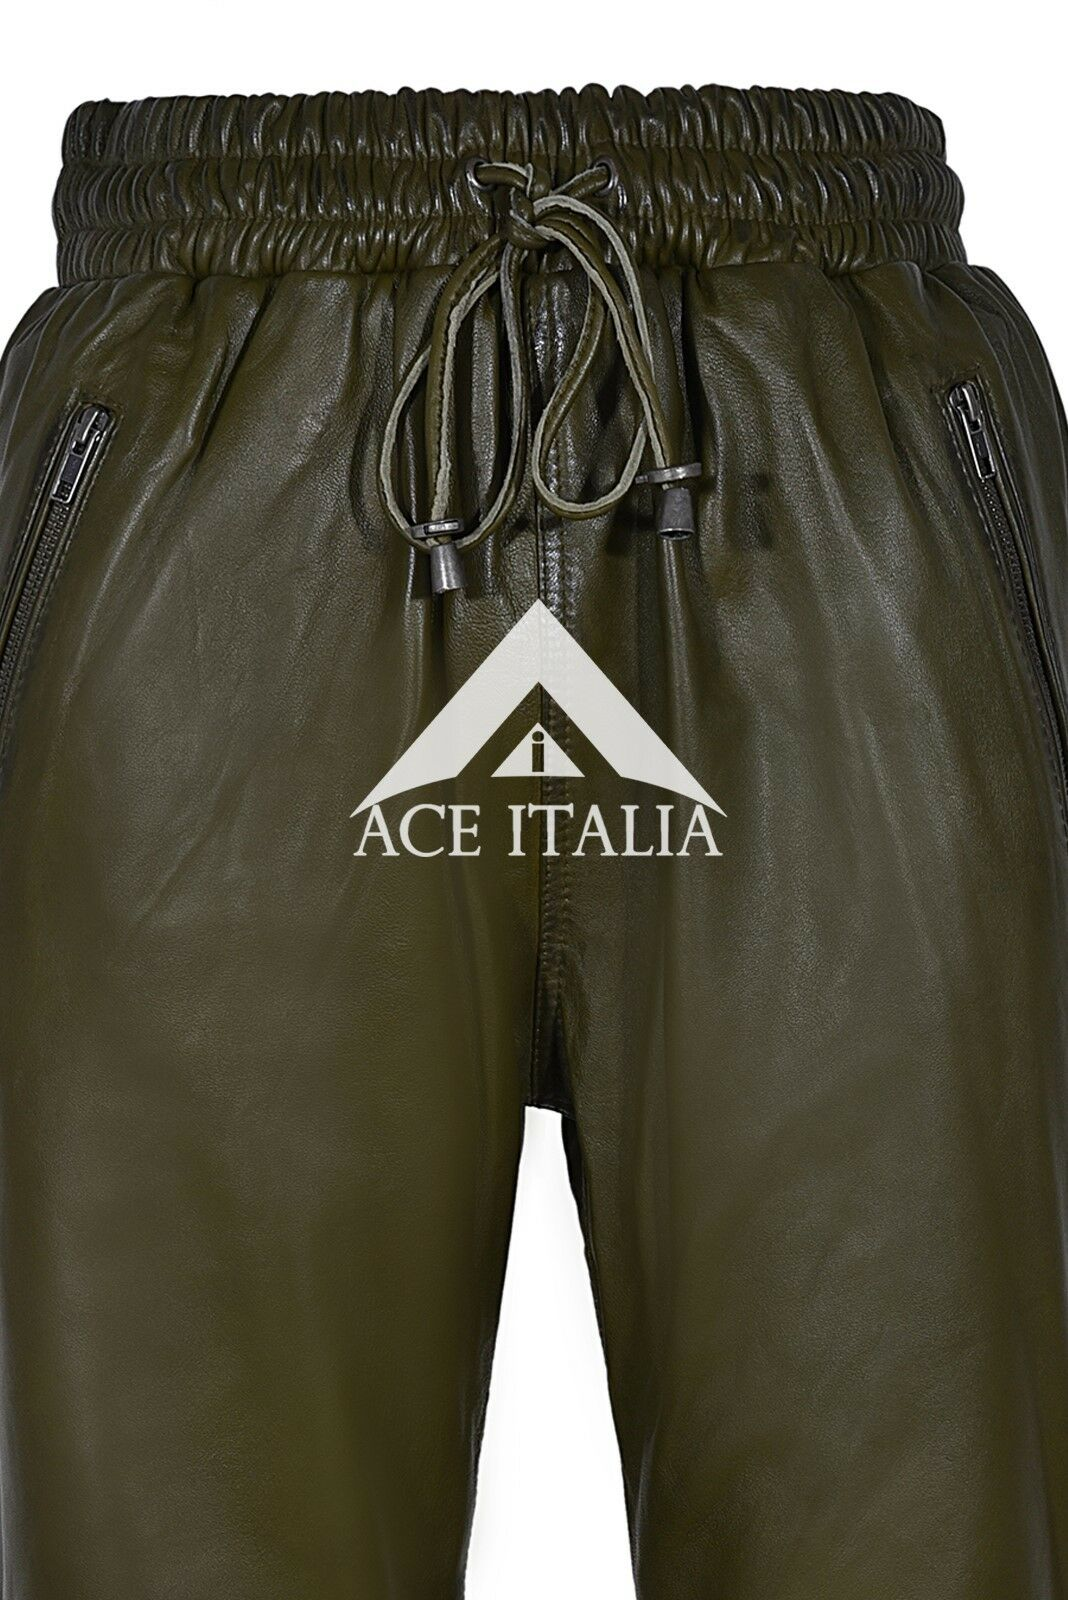 Mens Leather Trouser Trouser Trouser OLIVE Grün Sweat Track Pant Zip NAPA Jogging Bottom 3040 06b67e